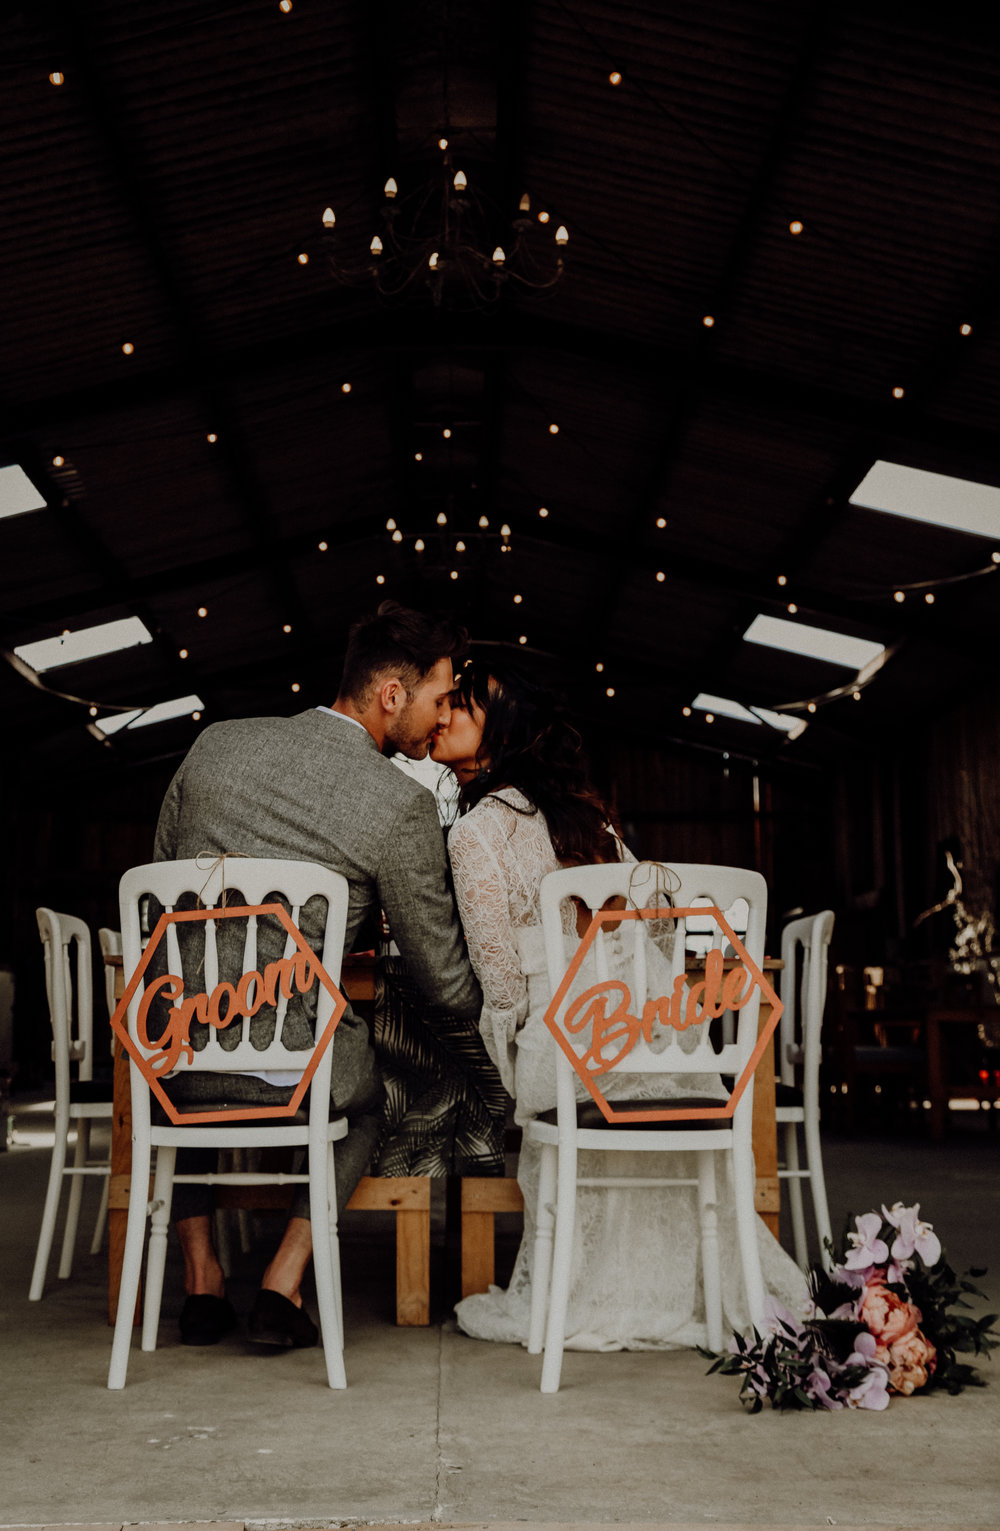 Your wedding, your way - Whether you are planning a Glamorous, Romantic or Boho-style wedding, Dove Barn Weddings offer you the opportunity to explore your own creative style and theme.